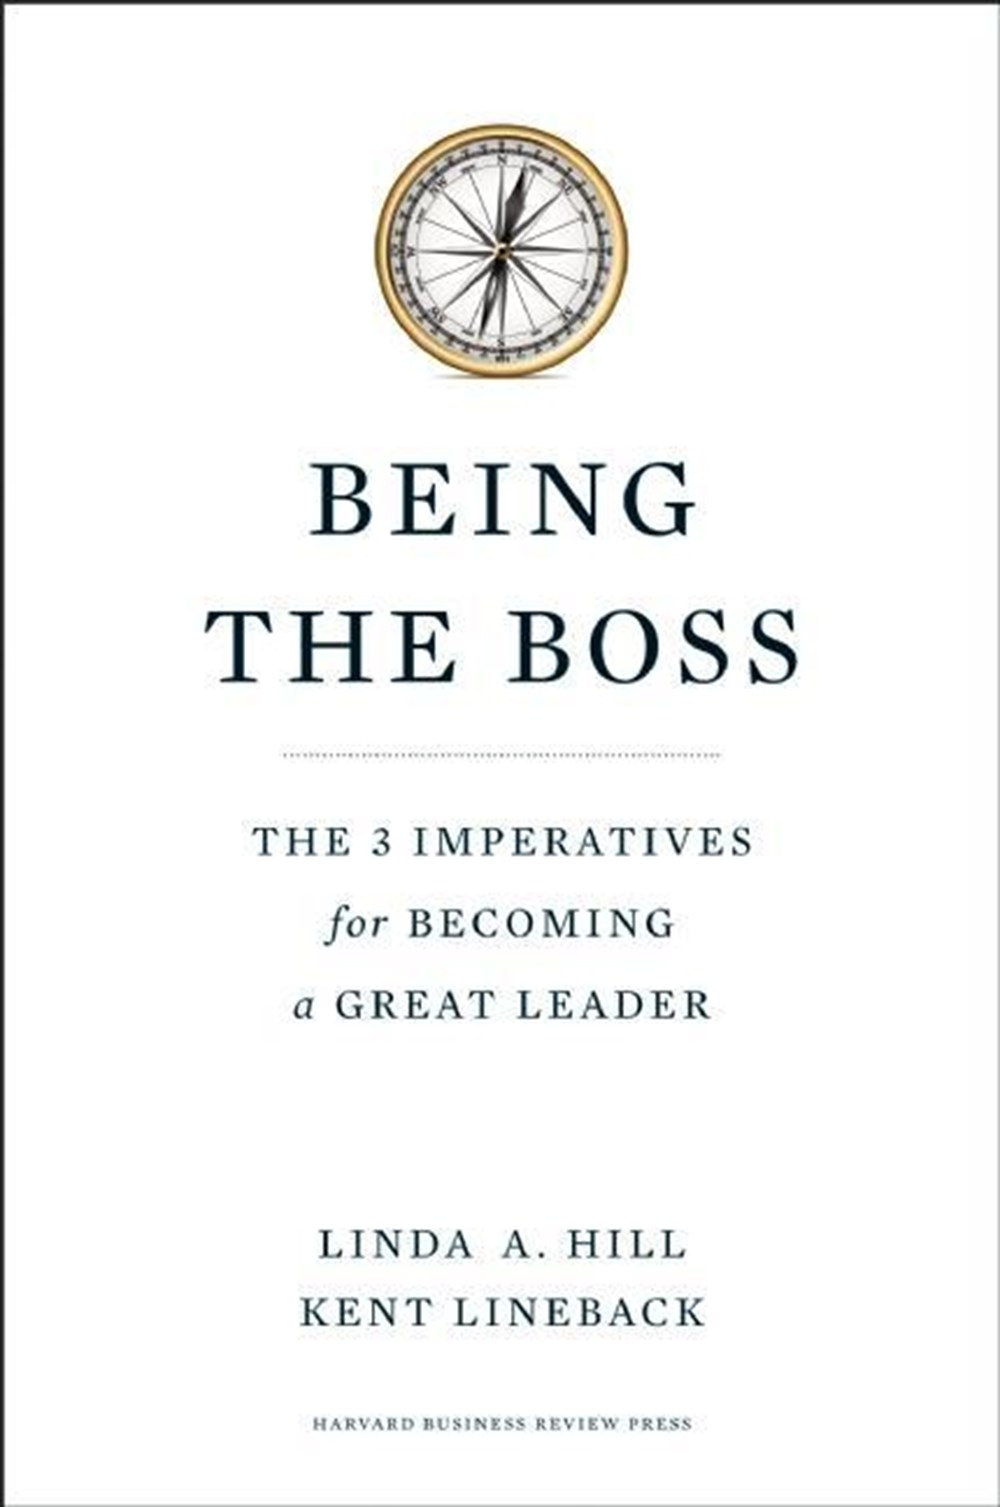 Being the Boss The 3 Imperatives for Becoming a Great Leader